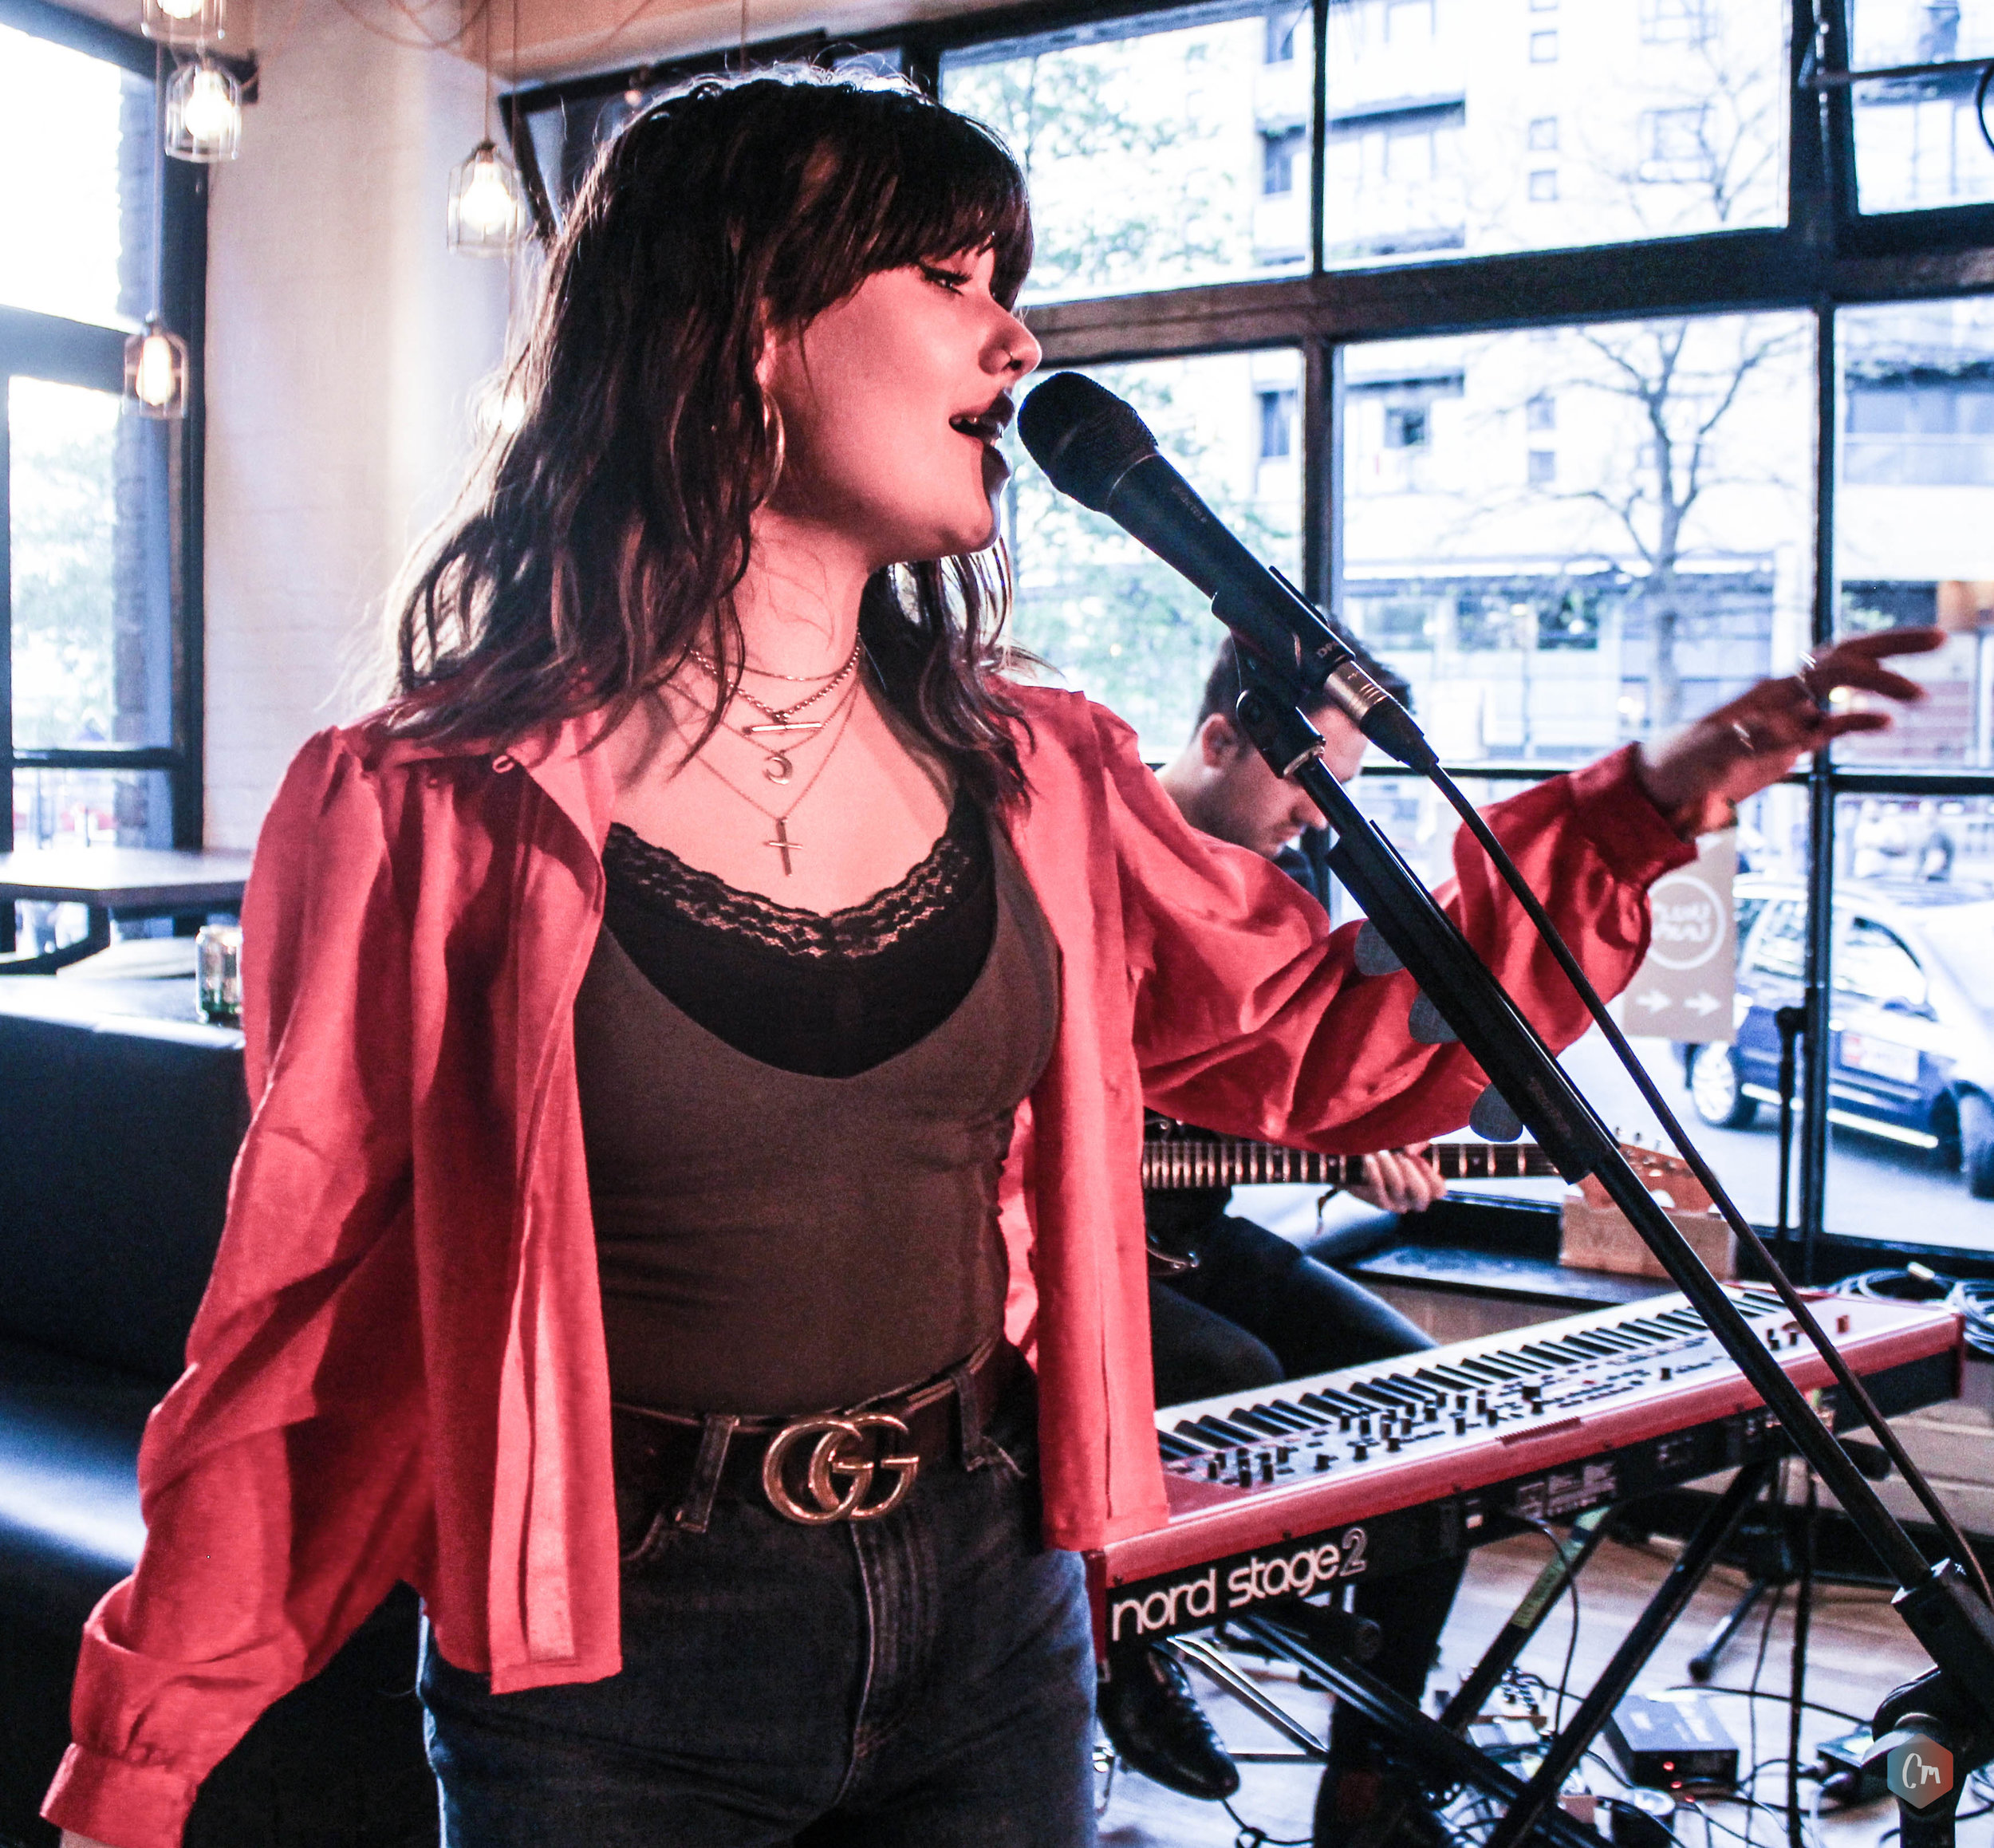 Lily Moore at Live at Leeds - Photo © Concentus Music - Reproduction without permission not permitted